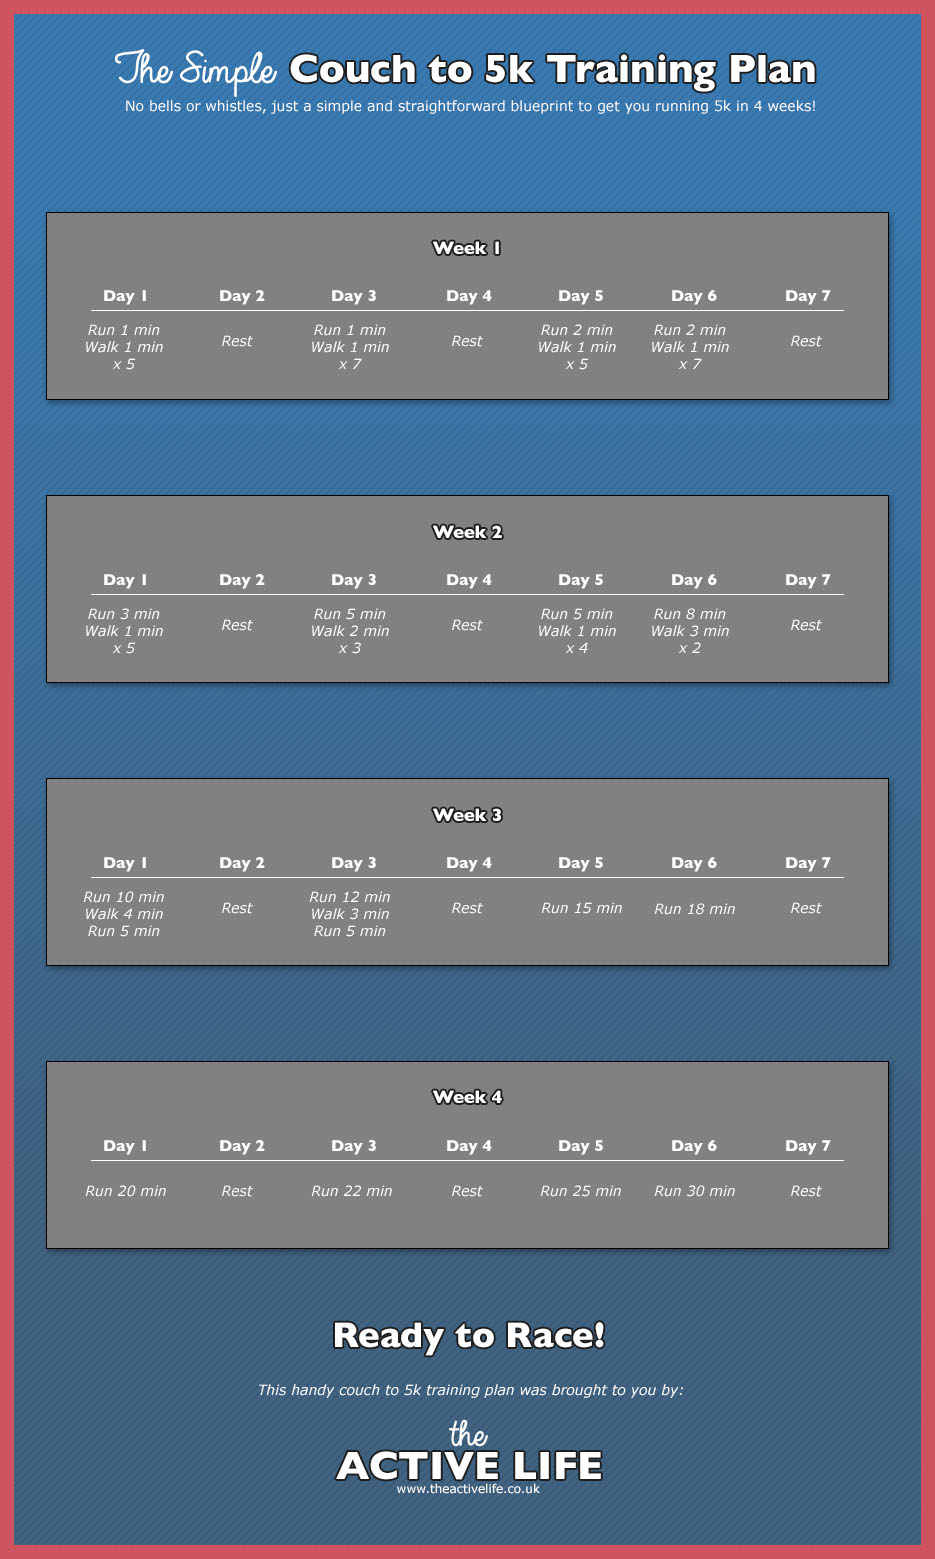 Simple couch to 5k training schedule